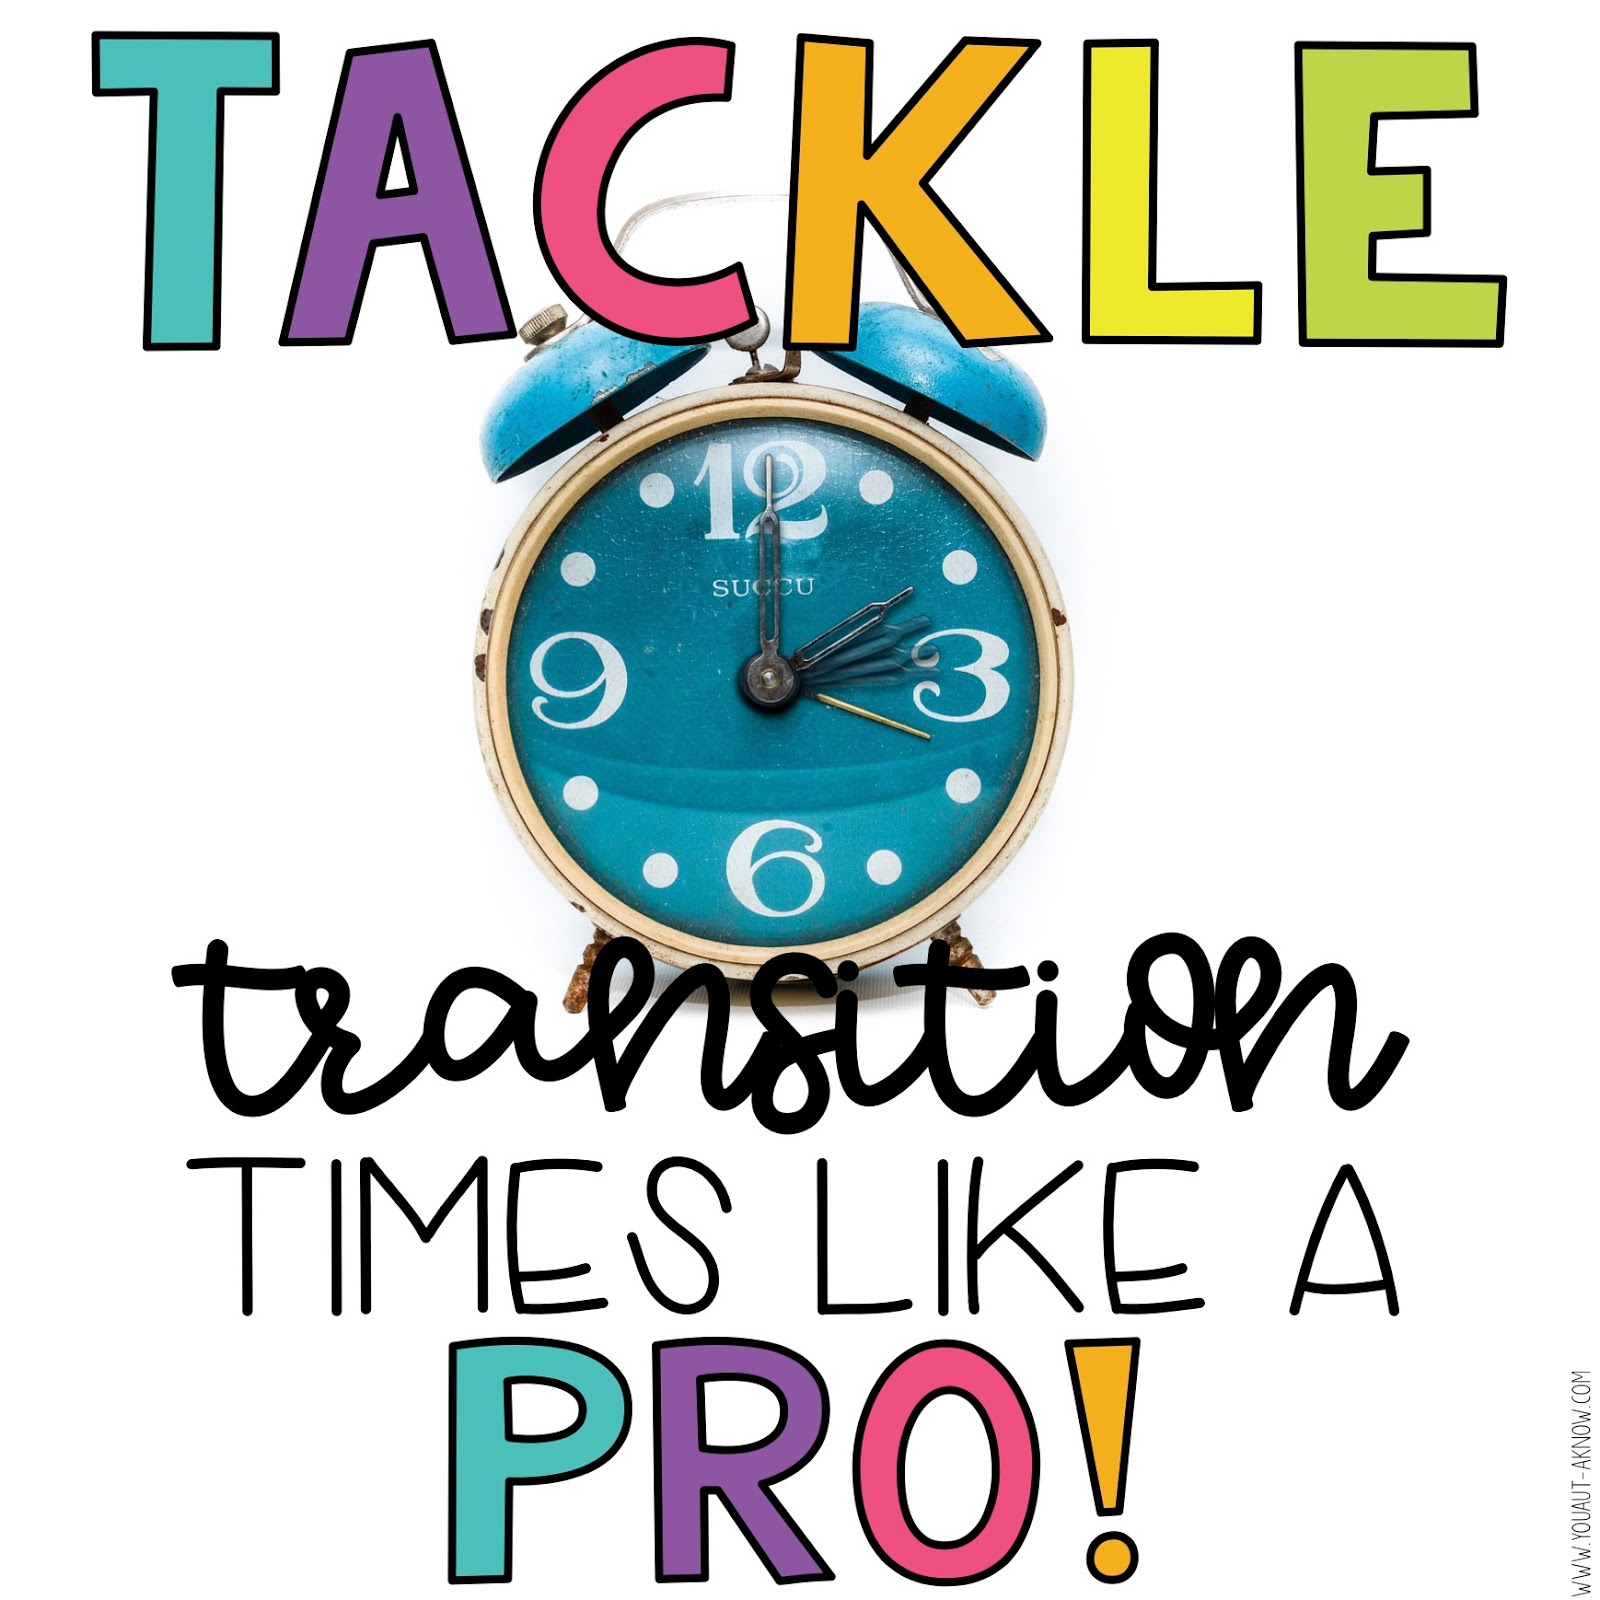 Transition times in the Special Education classroom can be difficult. Check out these 2 easy tips to tackle transition times like a pro in your classroom!